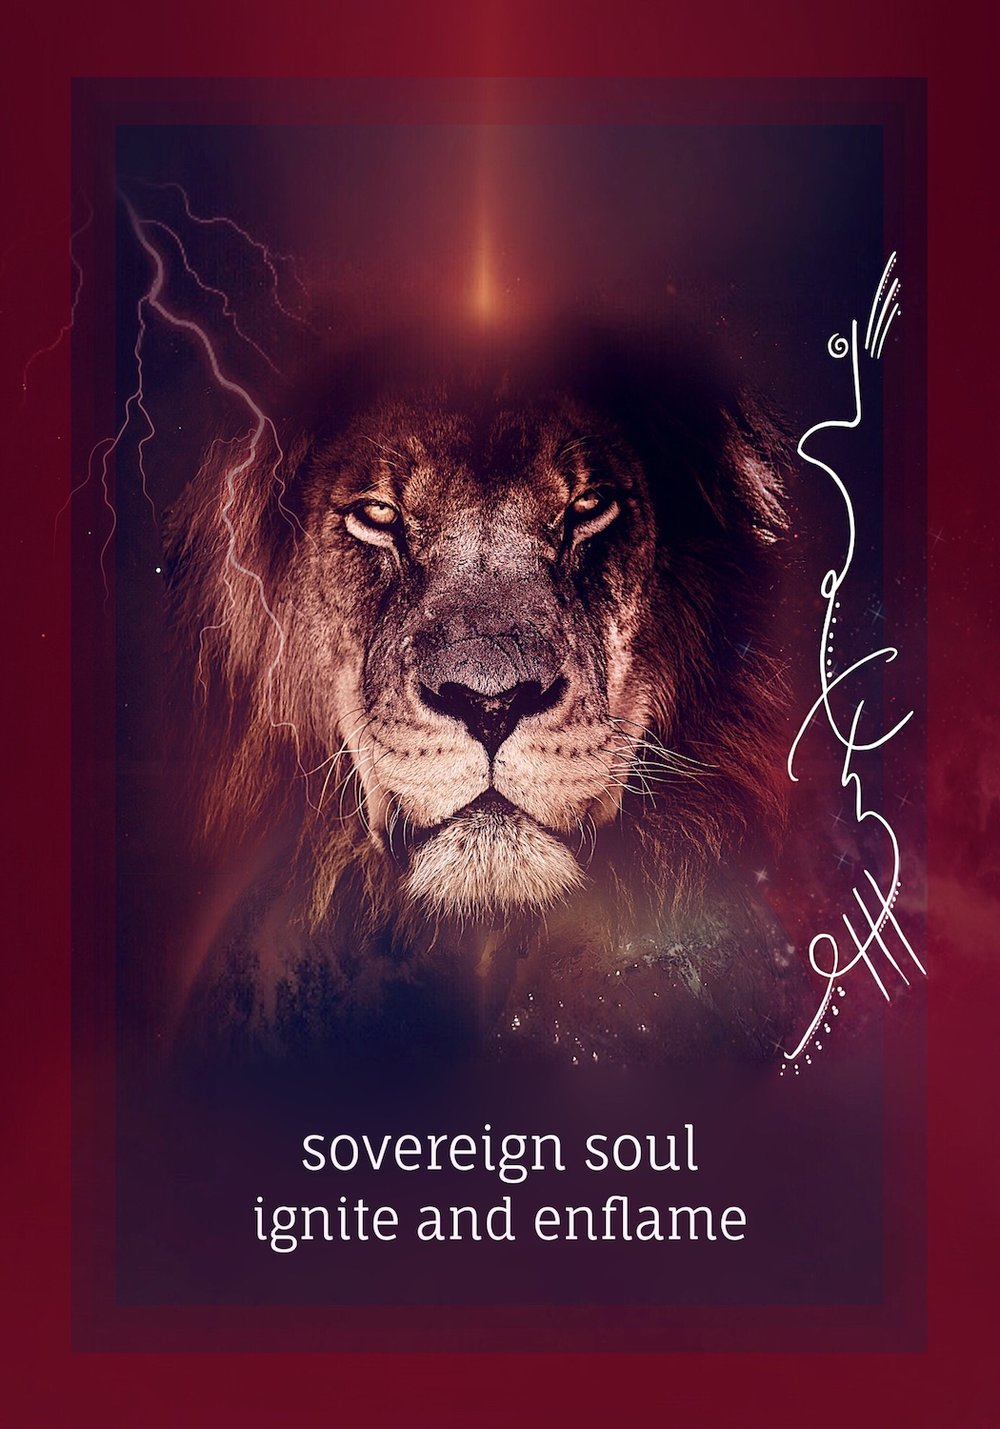 """Sovereignty is to hold the flame of your life force in reverence"" -"